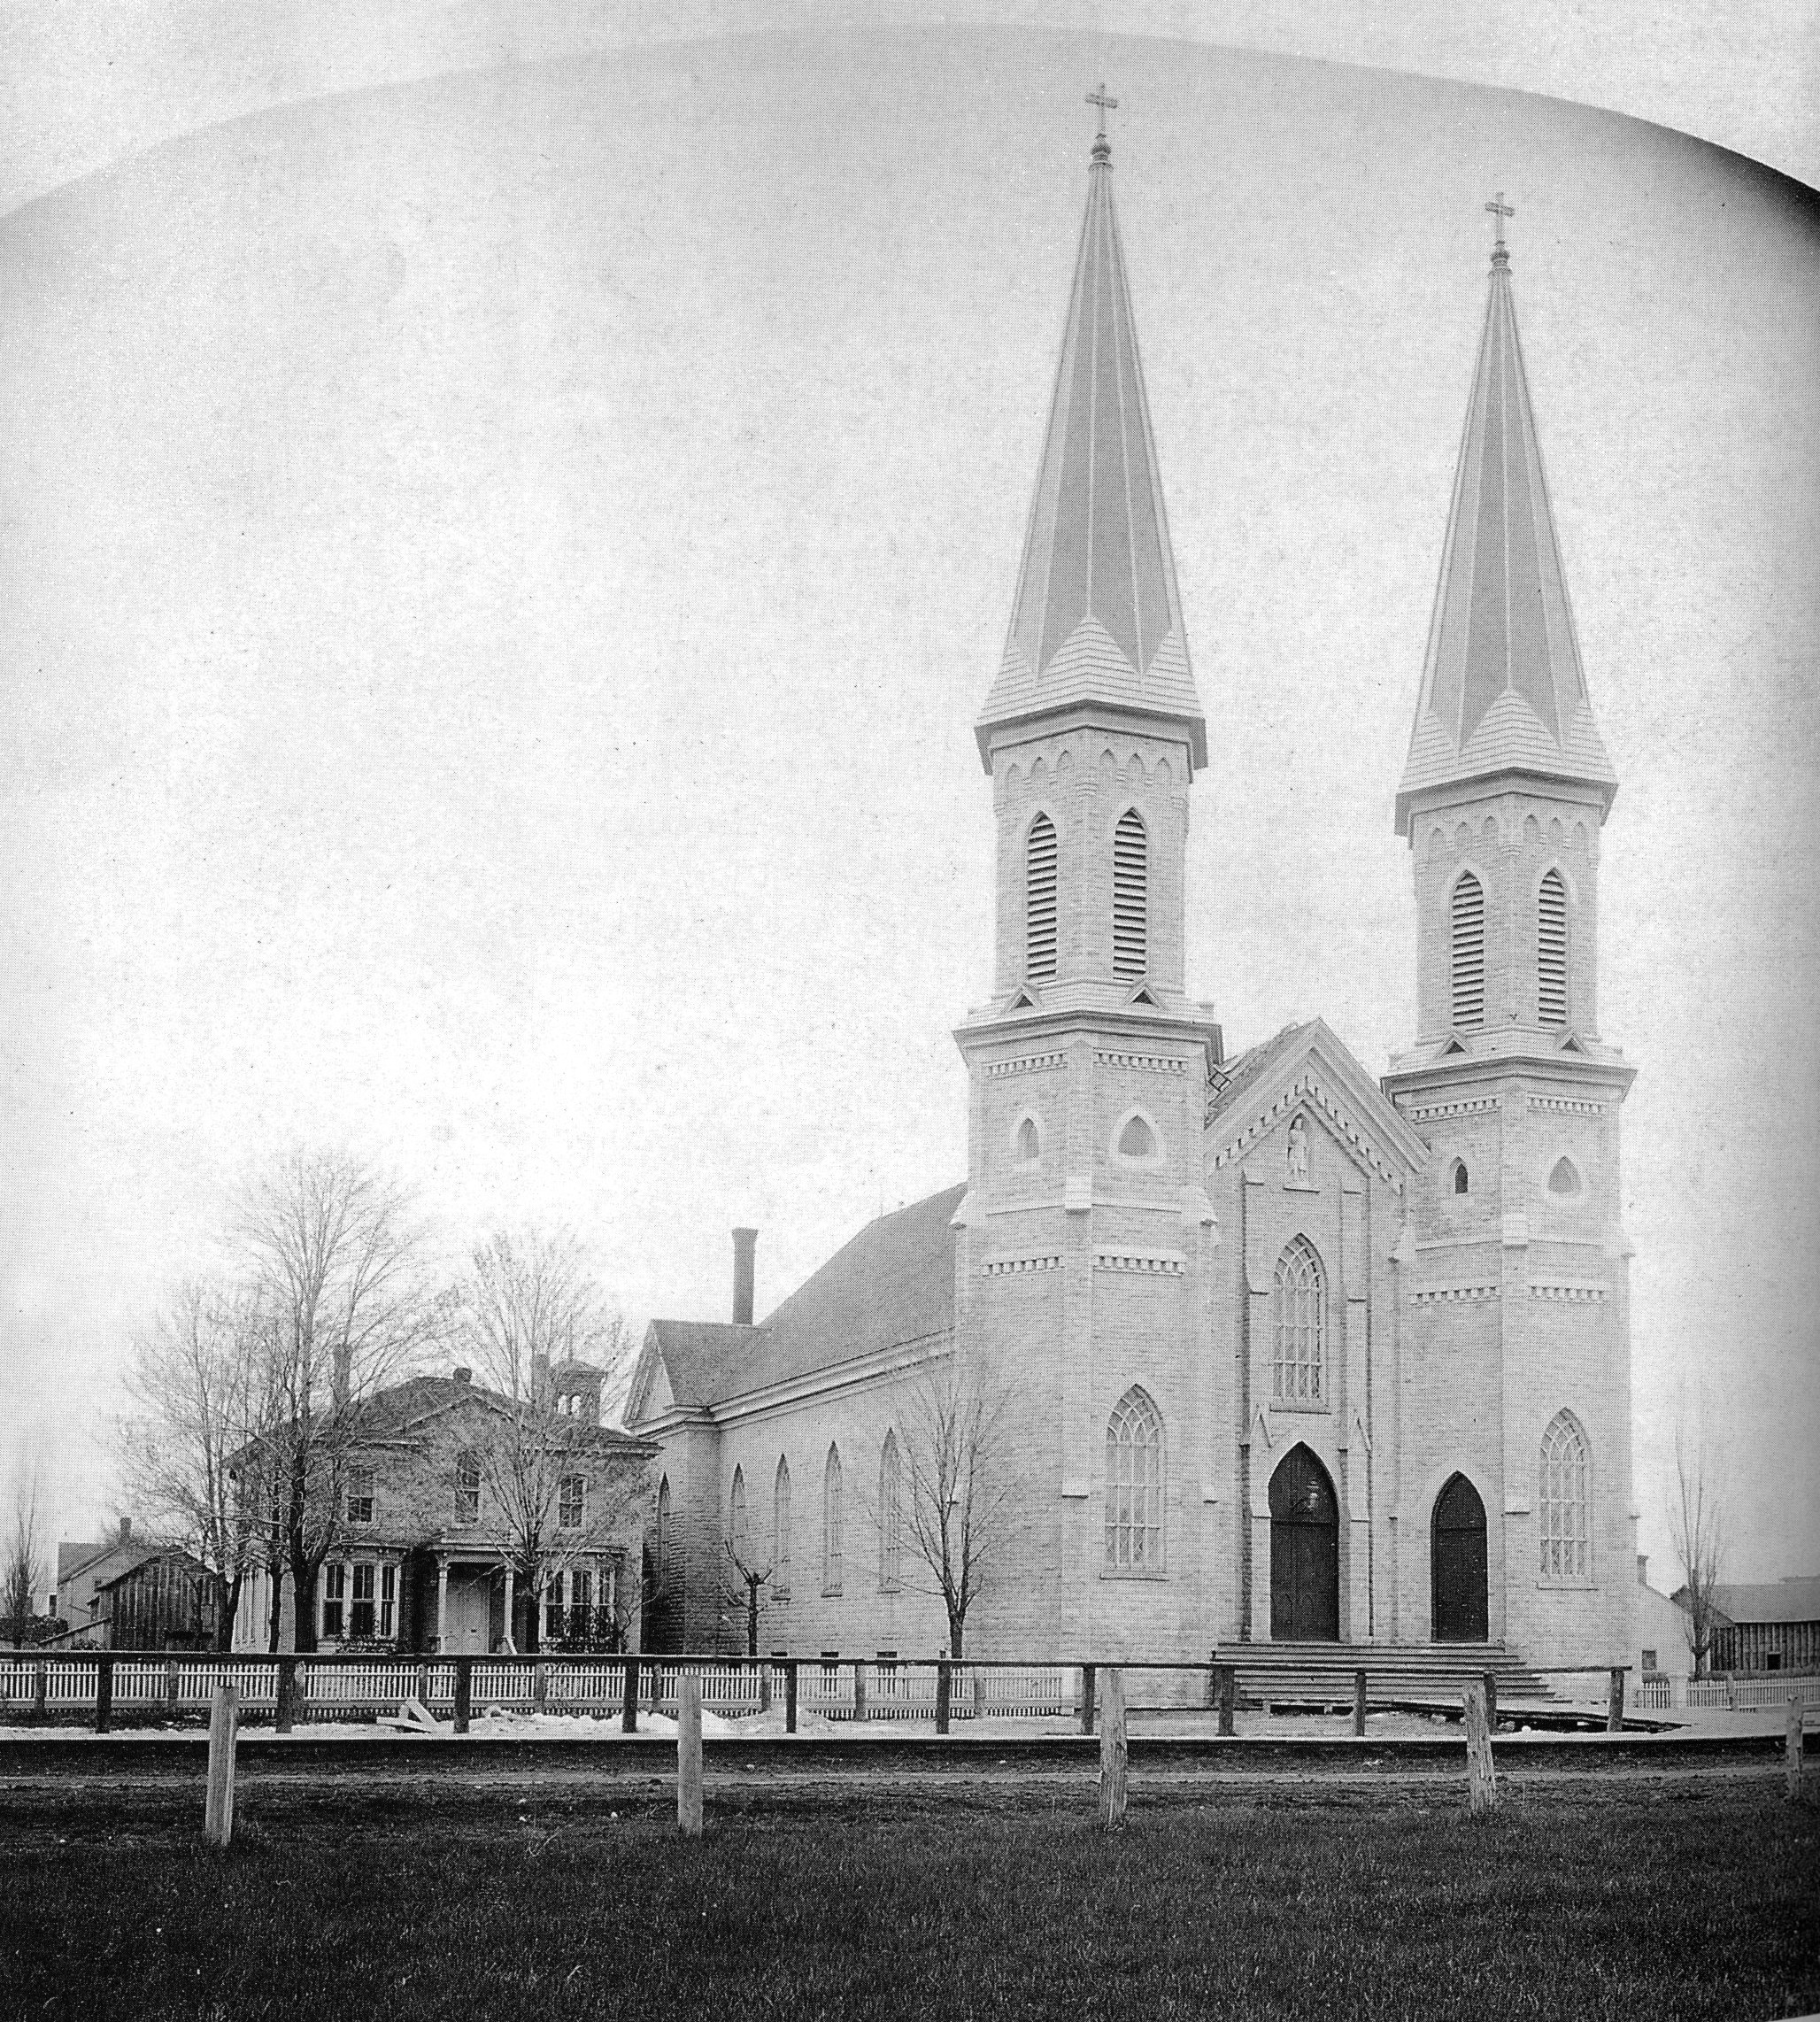 Twin steeples of St. Louis Church were finally completed in 1891.  The rectory on the left burned down in 1938.